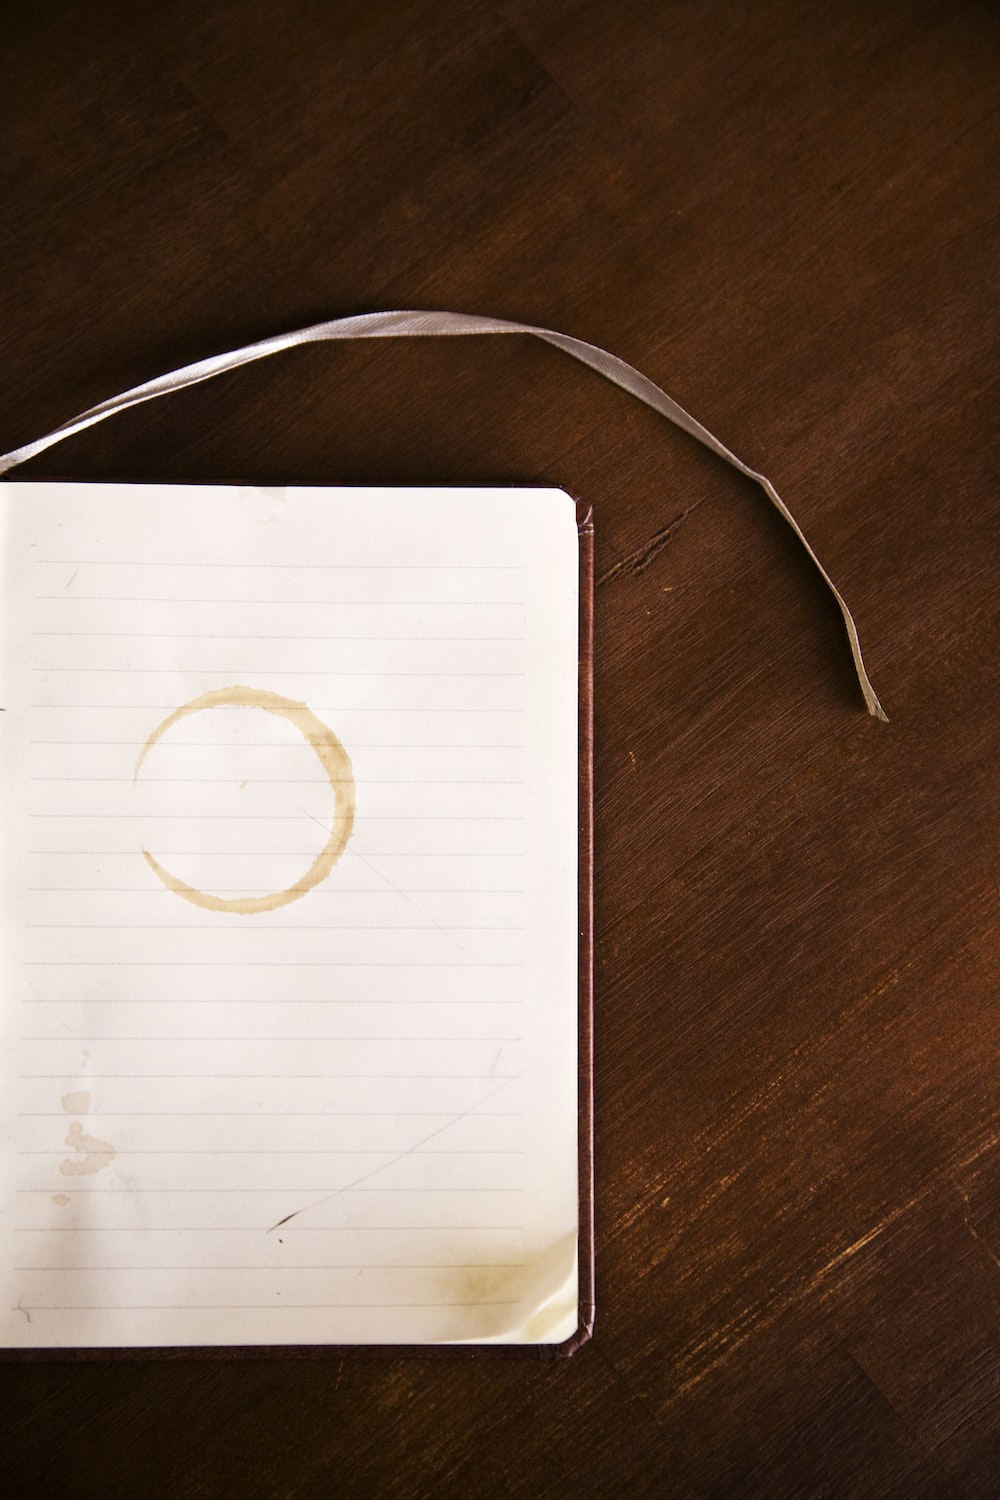 book and brown surface